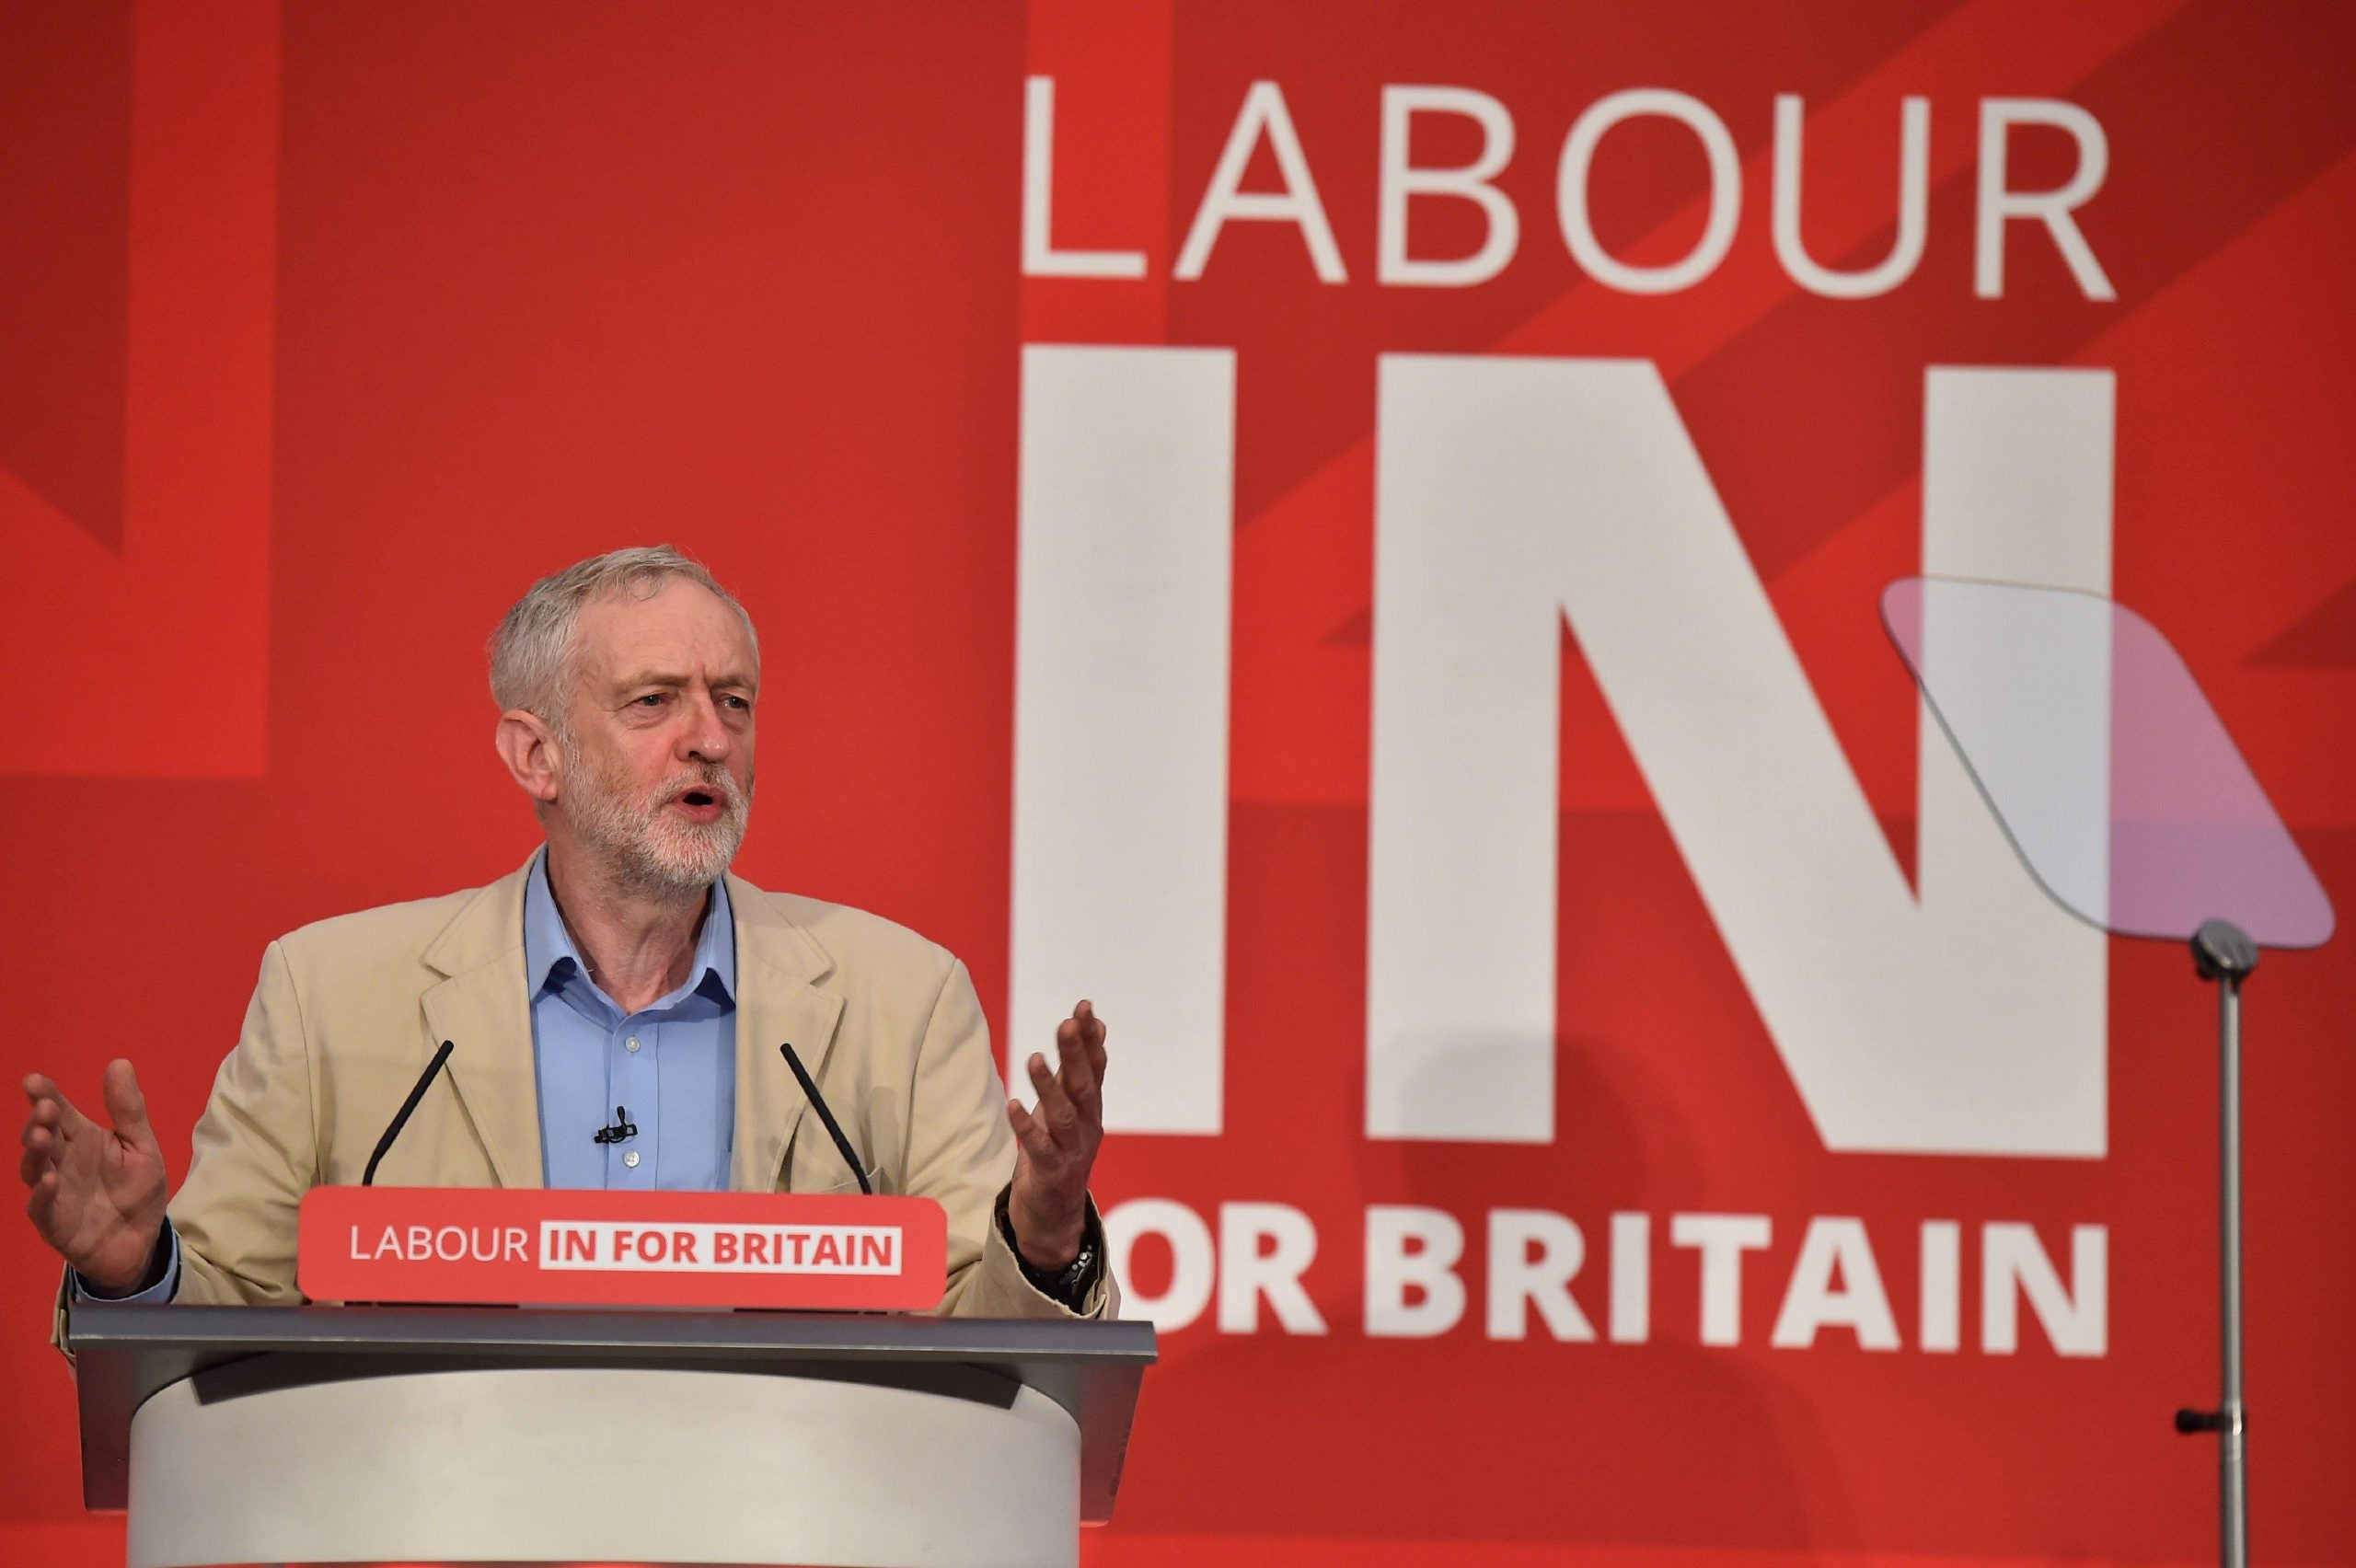 Jeremy Corbyn's speech swept away any doubts about his commitment to EU membership